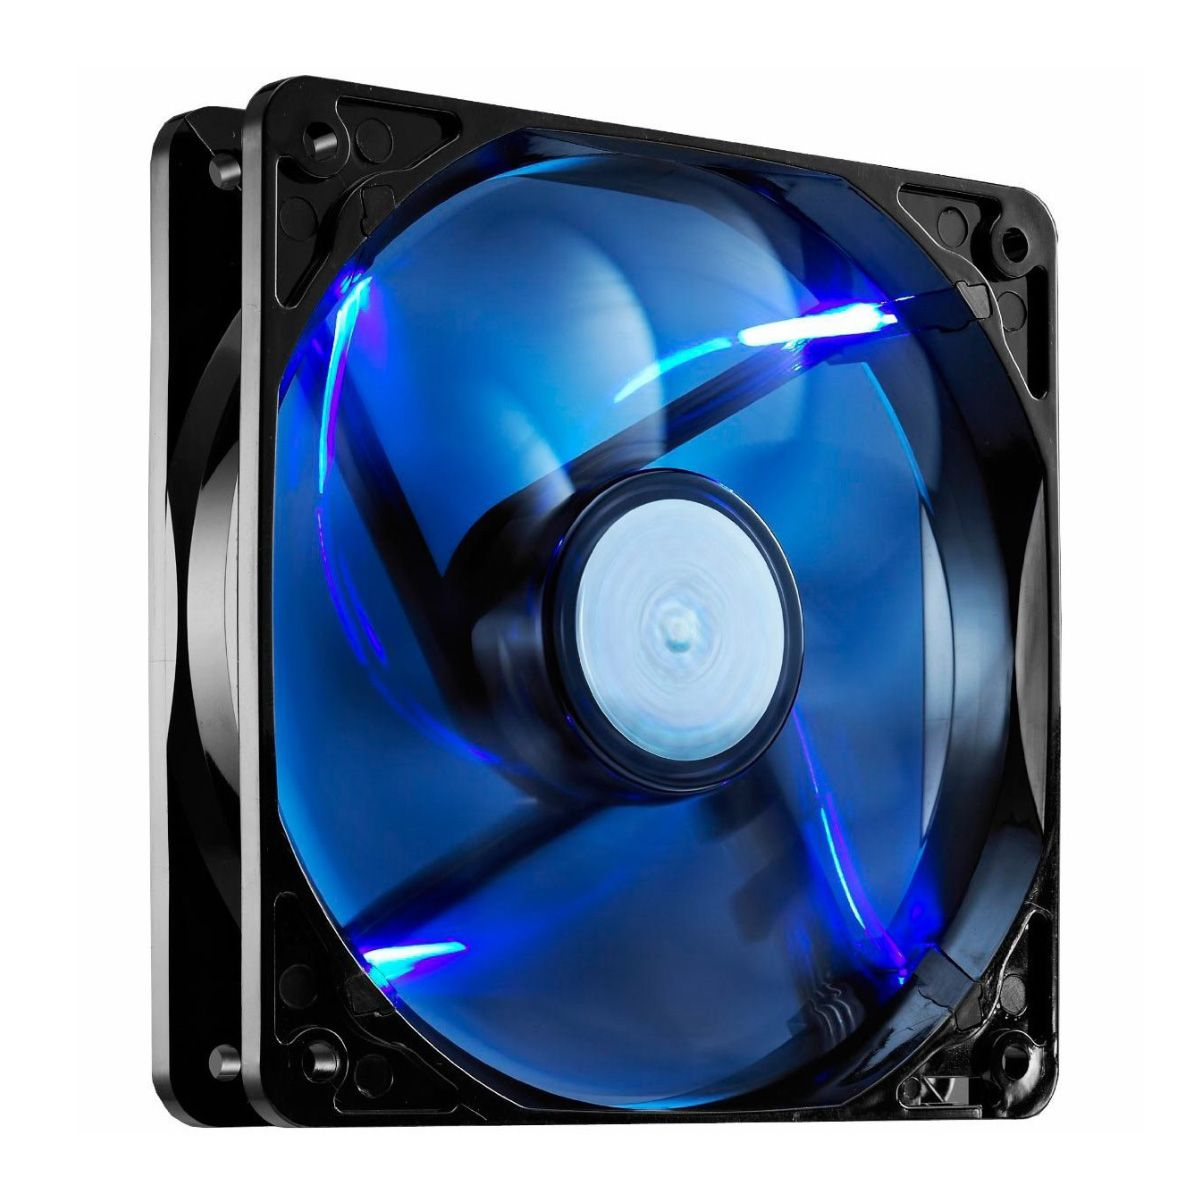 Cooler Fan 120mm Cooler Master Sickle Flow X com LED